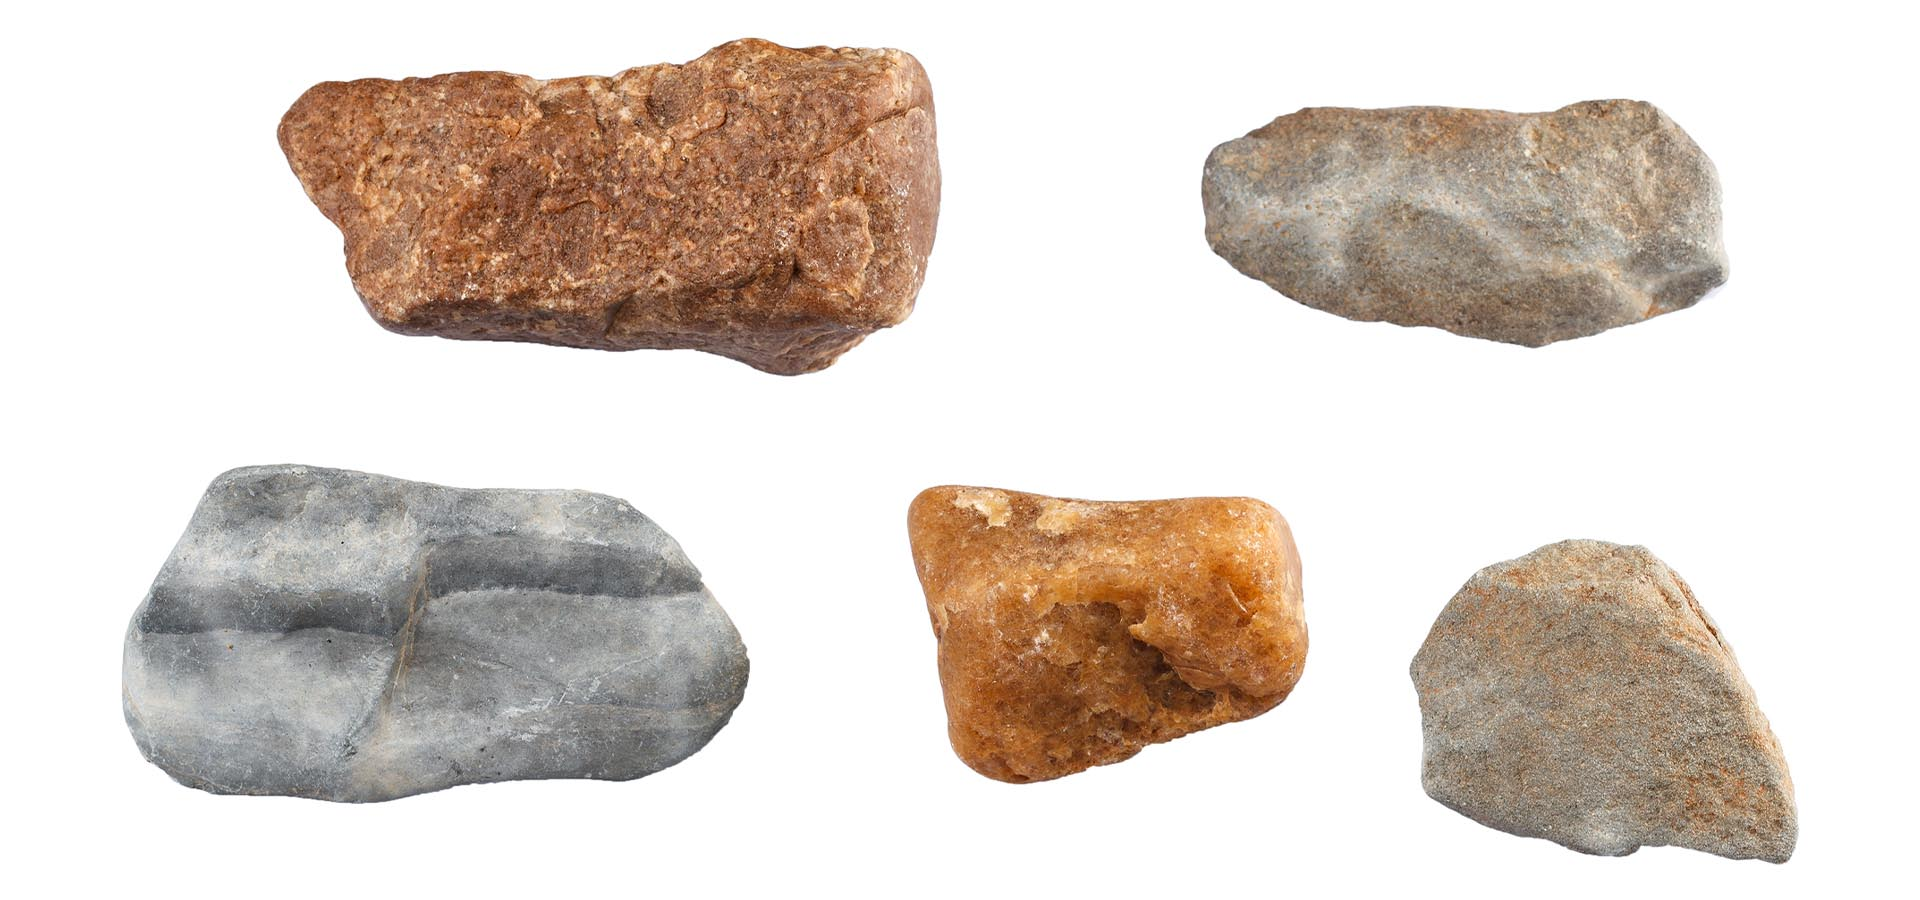 Searching for rocks for sale? What to look out for